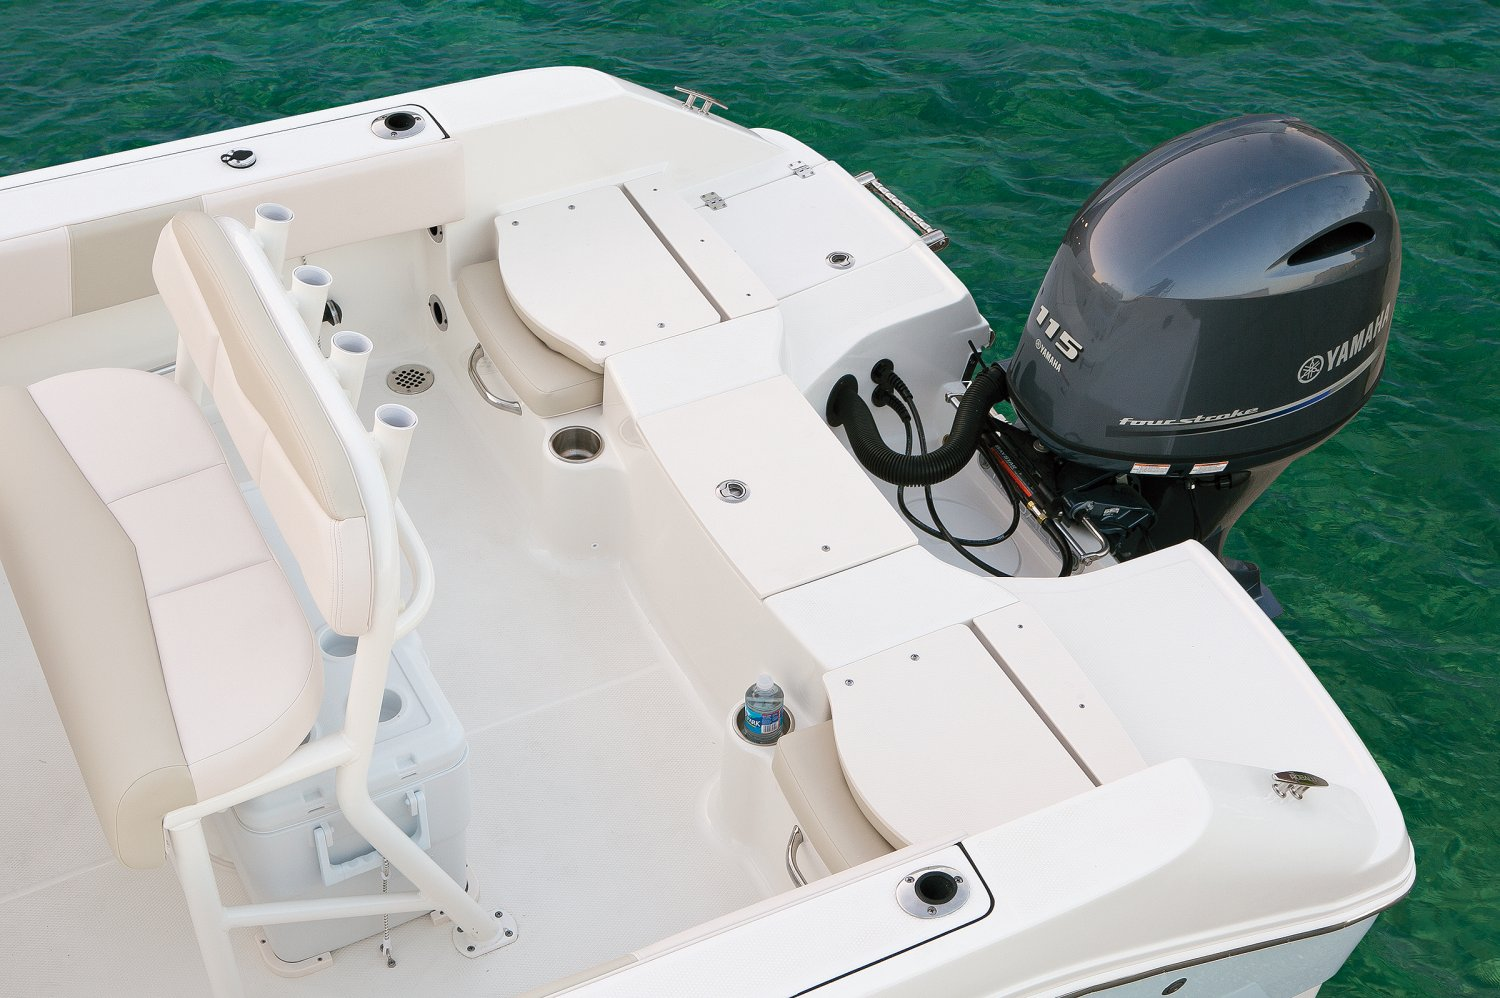 6246099_0_311219691600_19?t=1259695 new 2018 robalo r180, gainesville, fl 32609 boattrader com robalo 1820 wiring diagram at nearapp.co